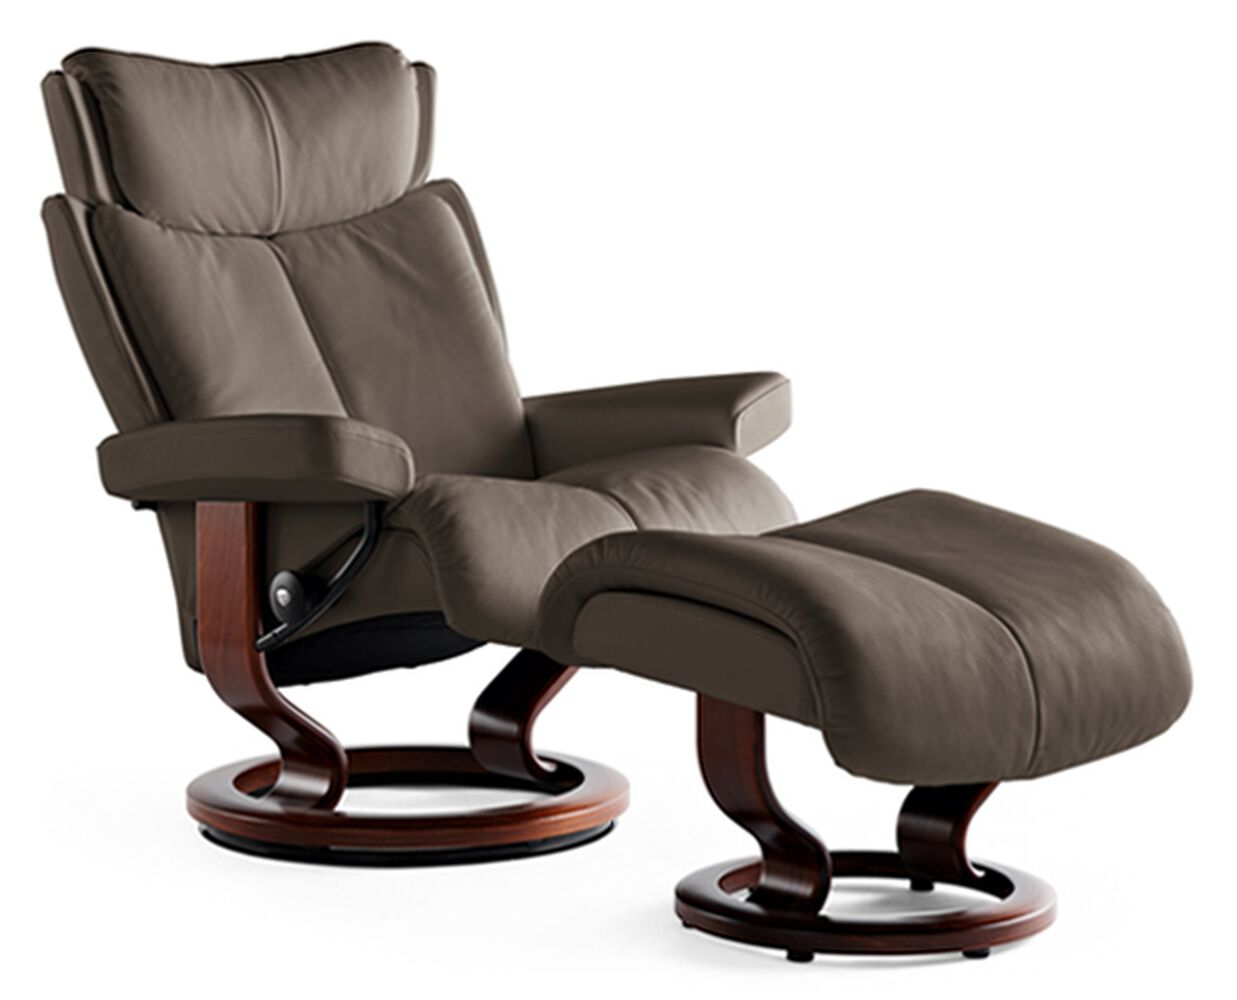 Contemporary Small Chair And Ottoman In Chocolate Mathis